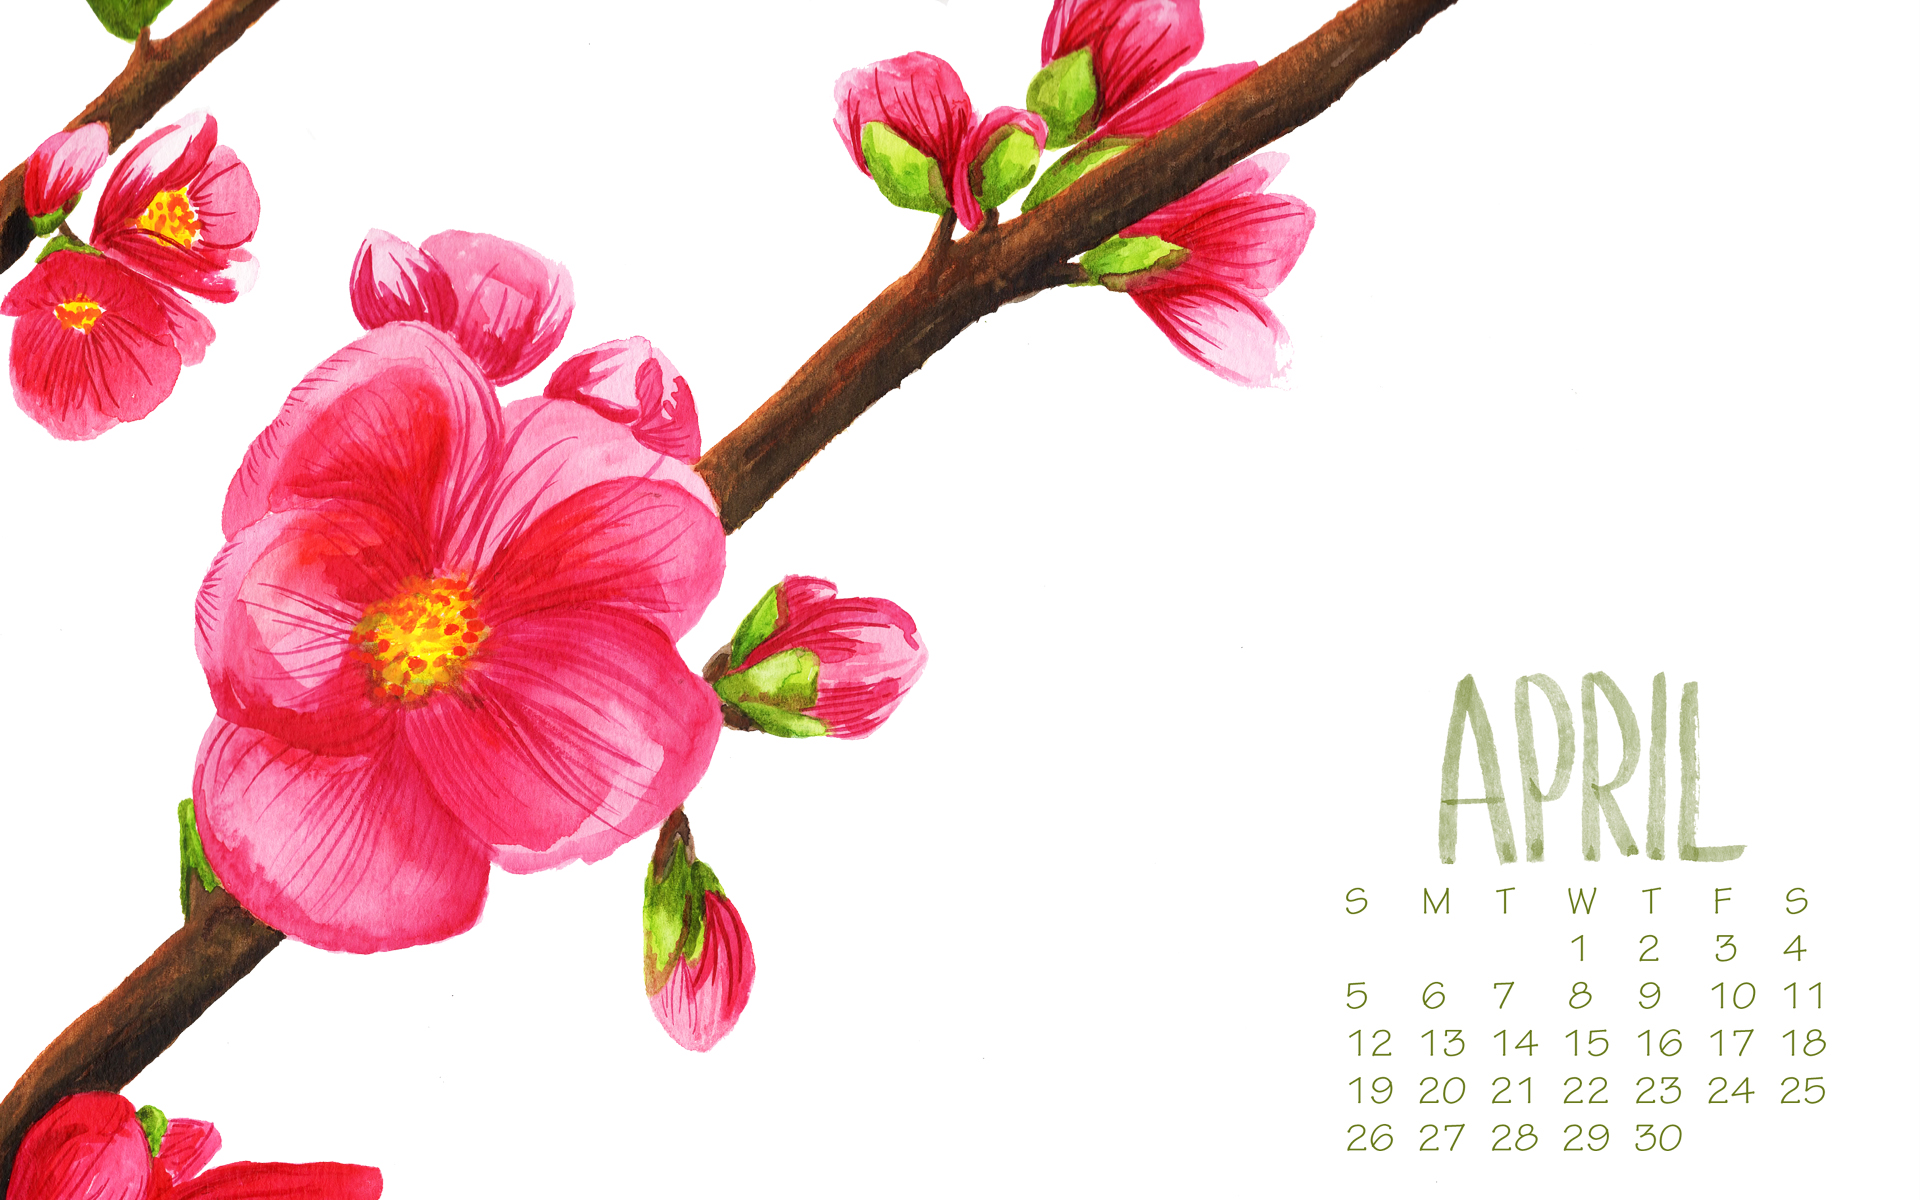 april 2015 desktop wallpaper by Daughter Zion Designs free download